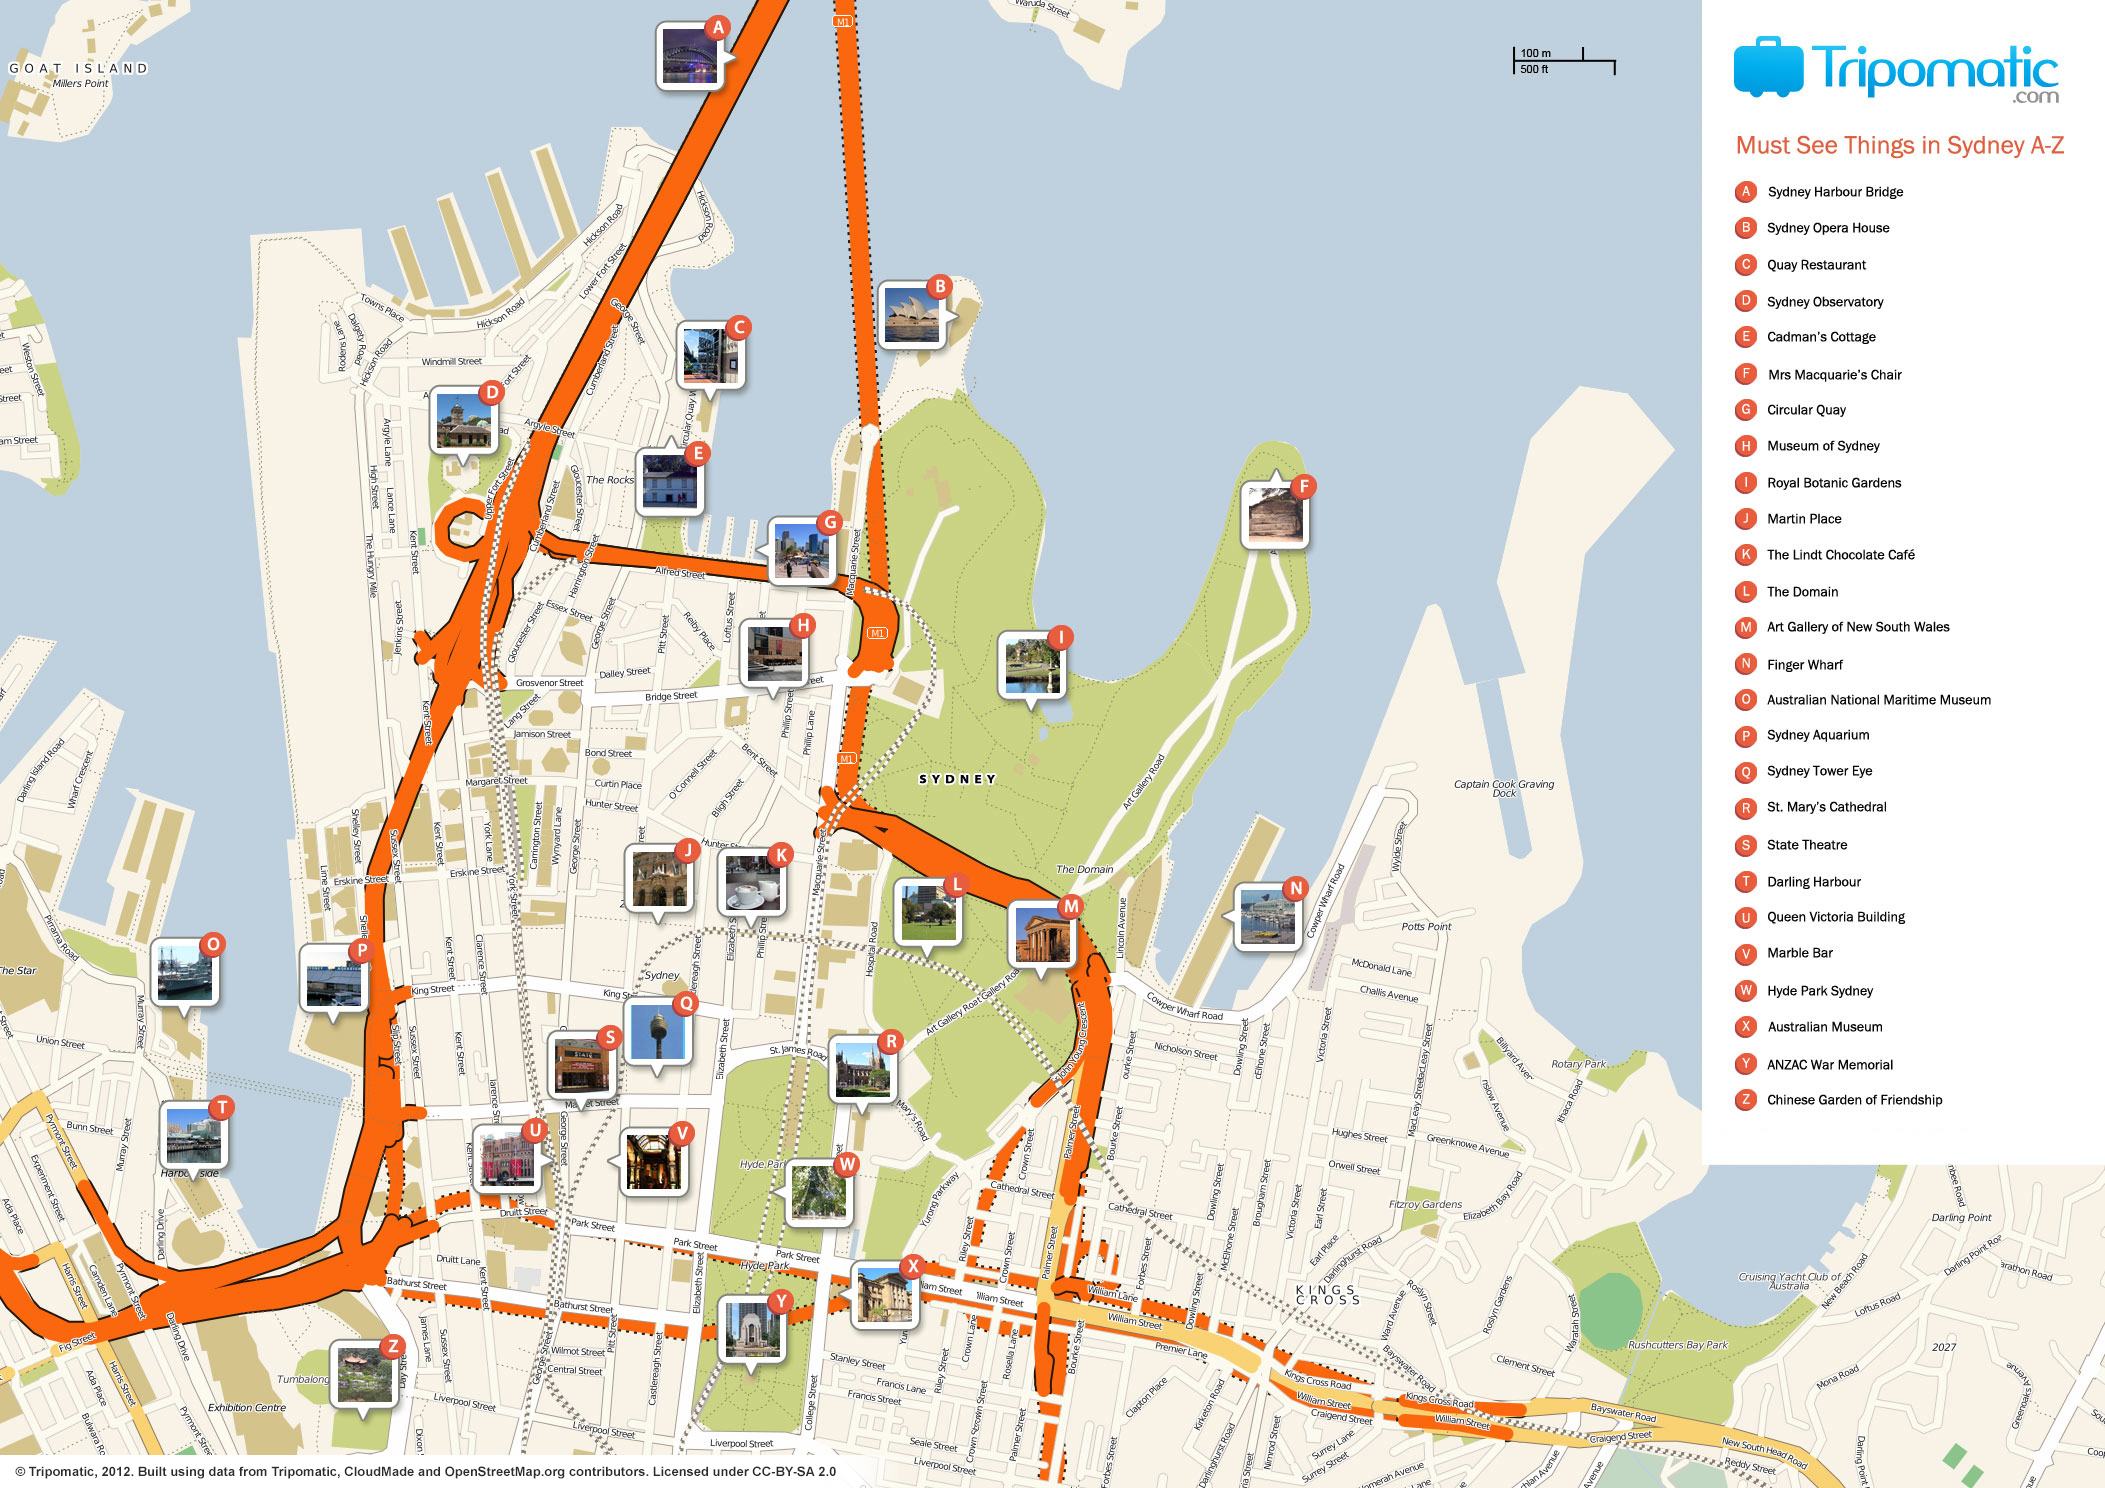 File:sydney Printable Tourist Attractions Map - Wikimedia Commons - Sydney Tourist Map Printable